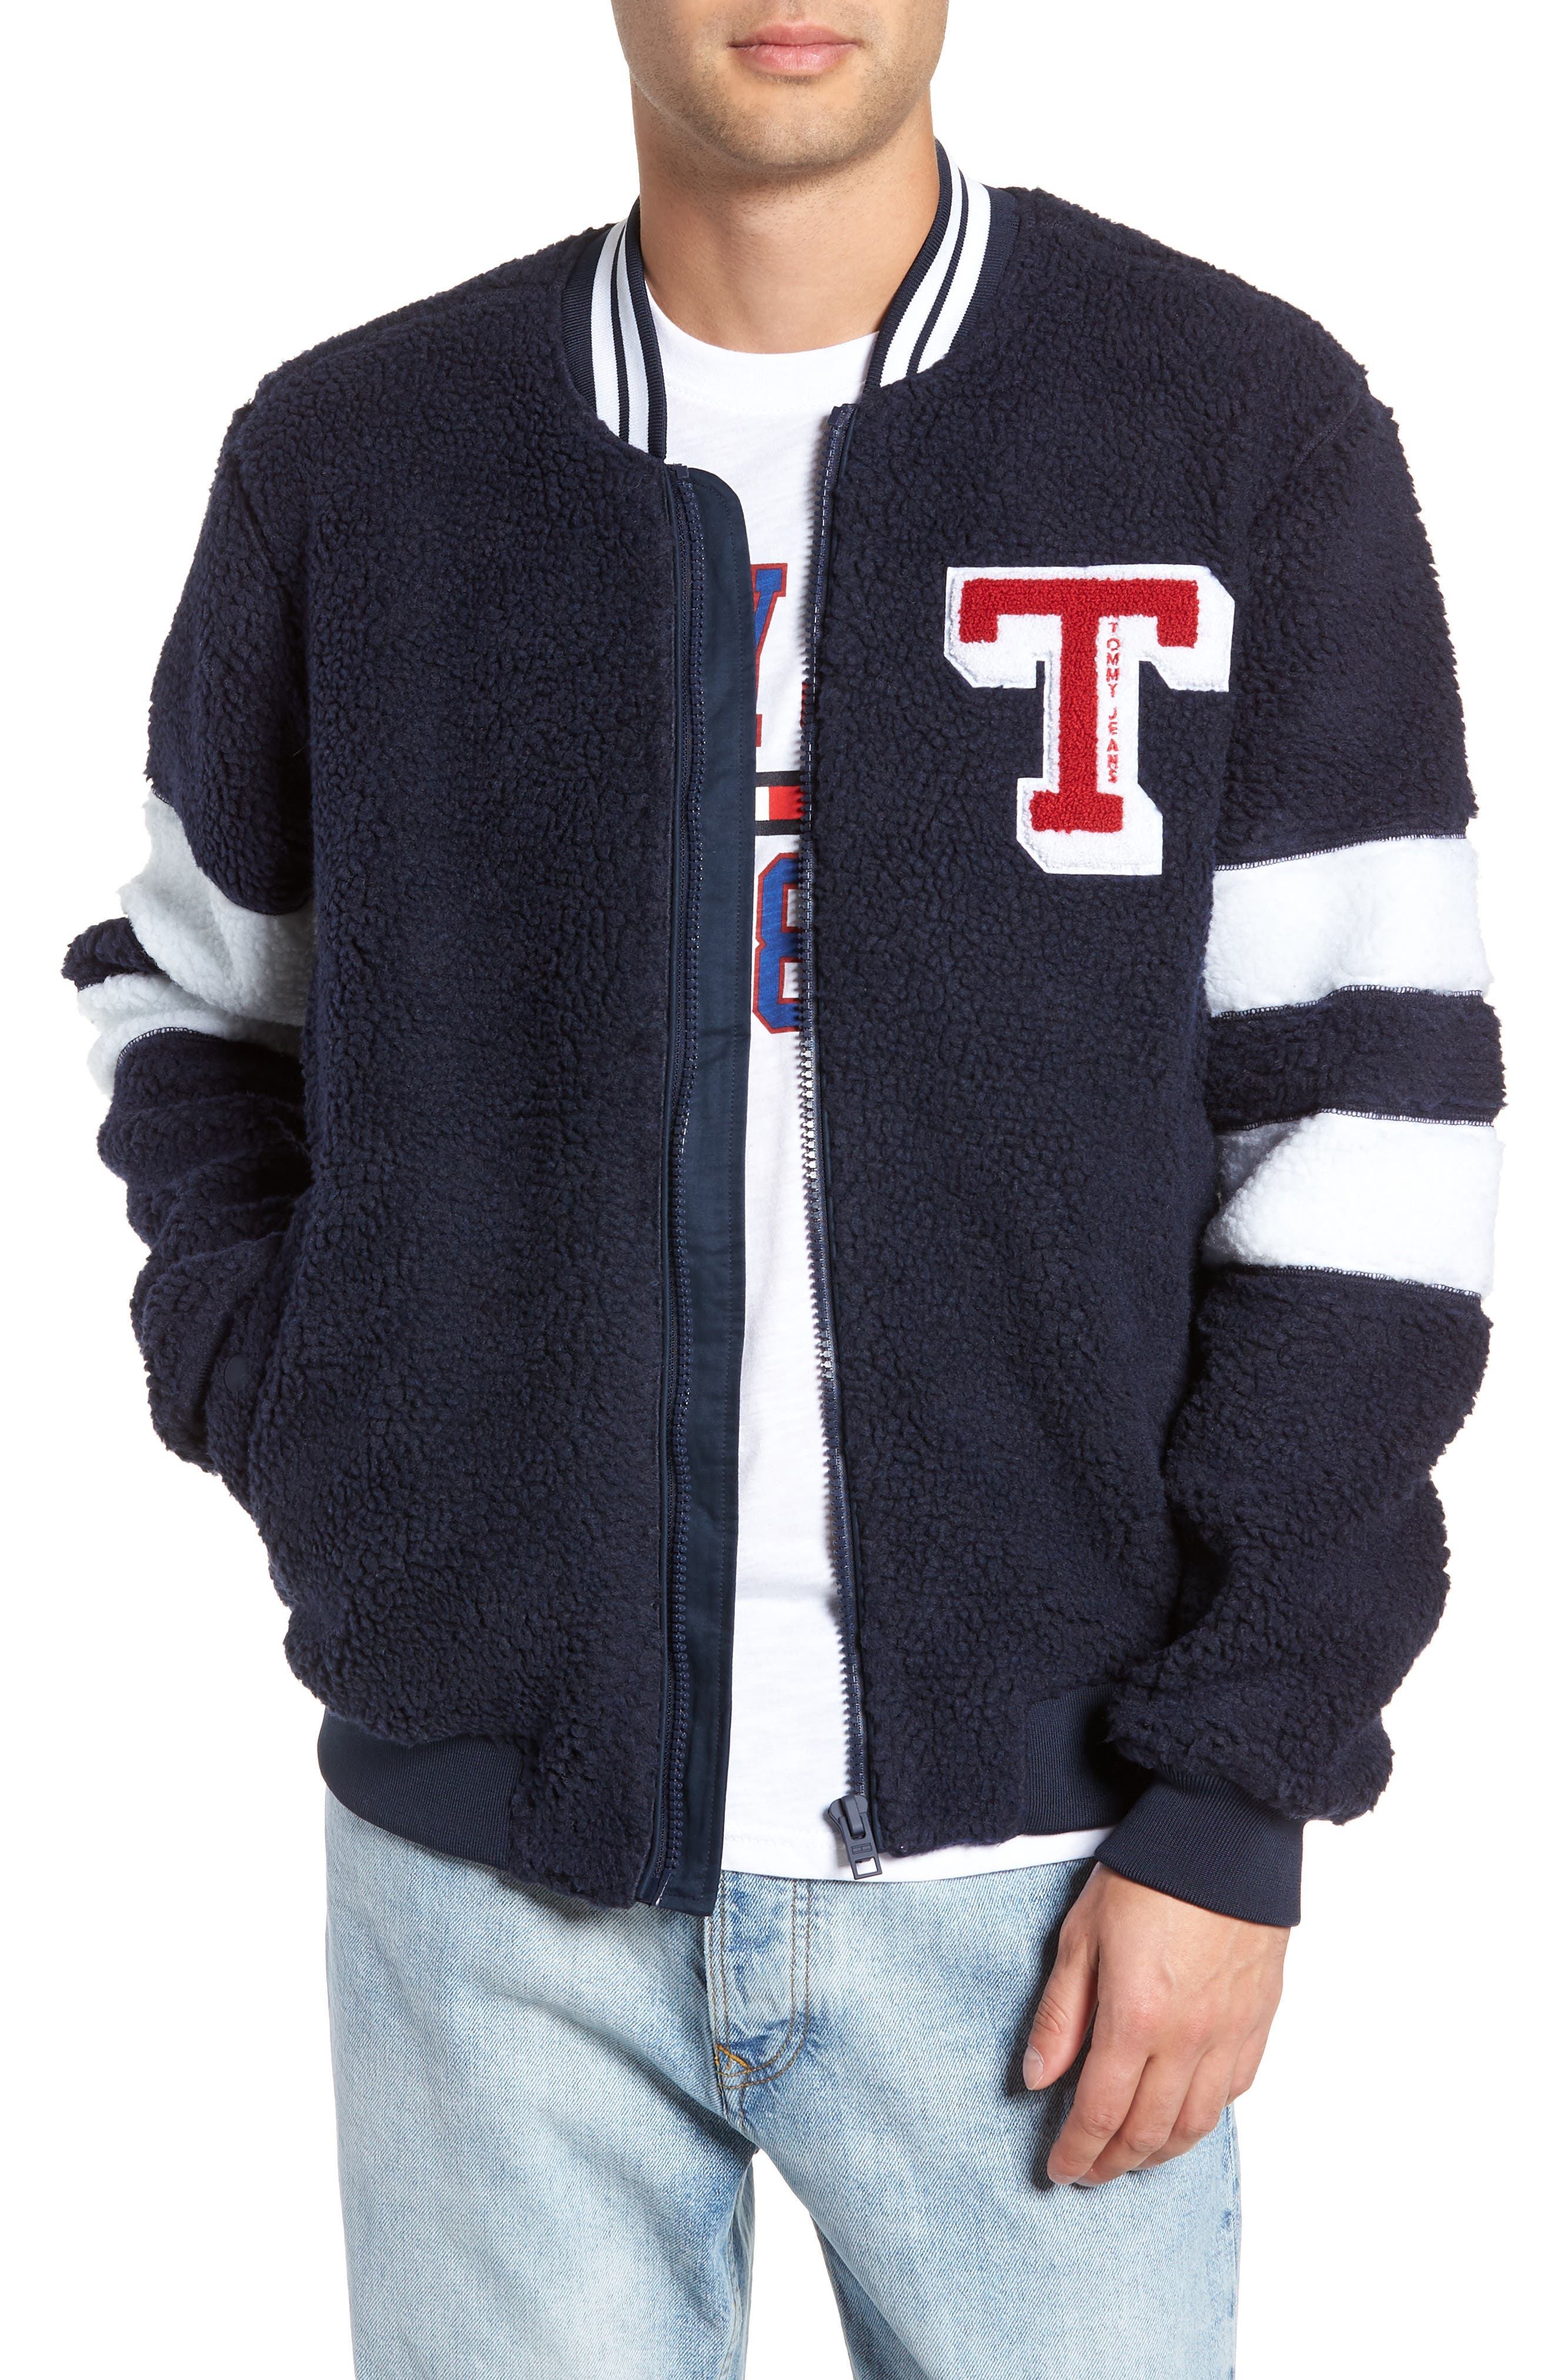 TOMMY JEANS TJM Teddy Bomber Jacket, Main, color, 400